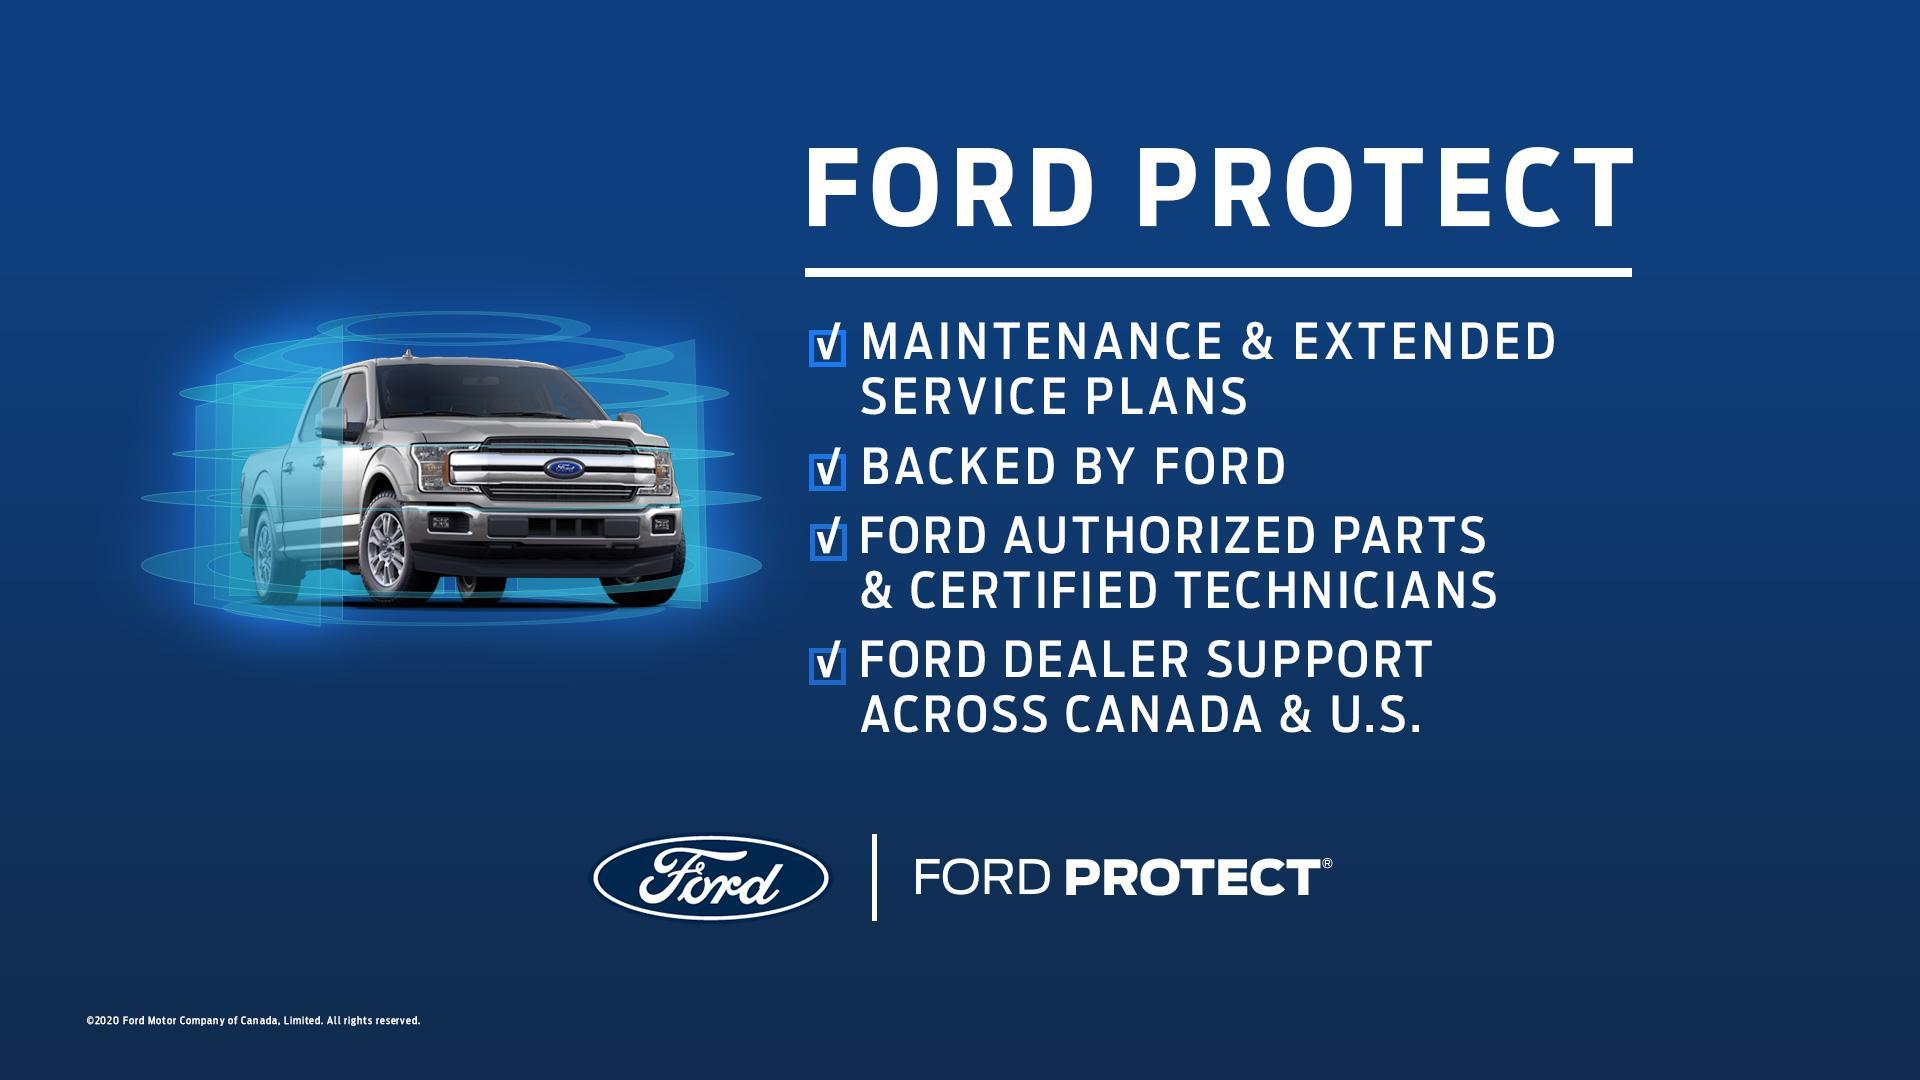 Ford Ford Protect Ford Protect